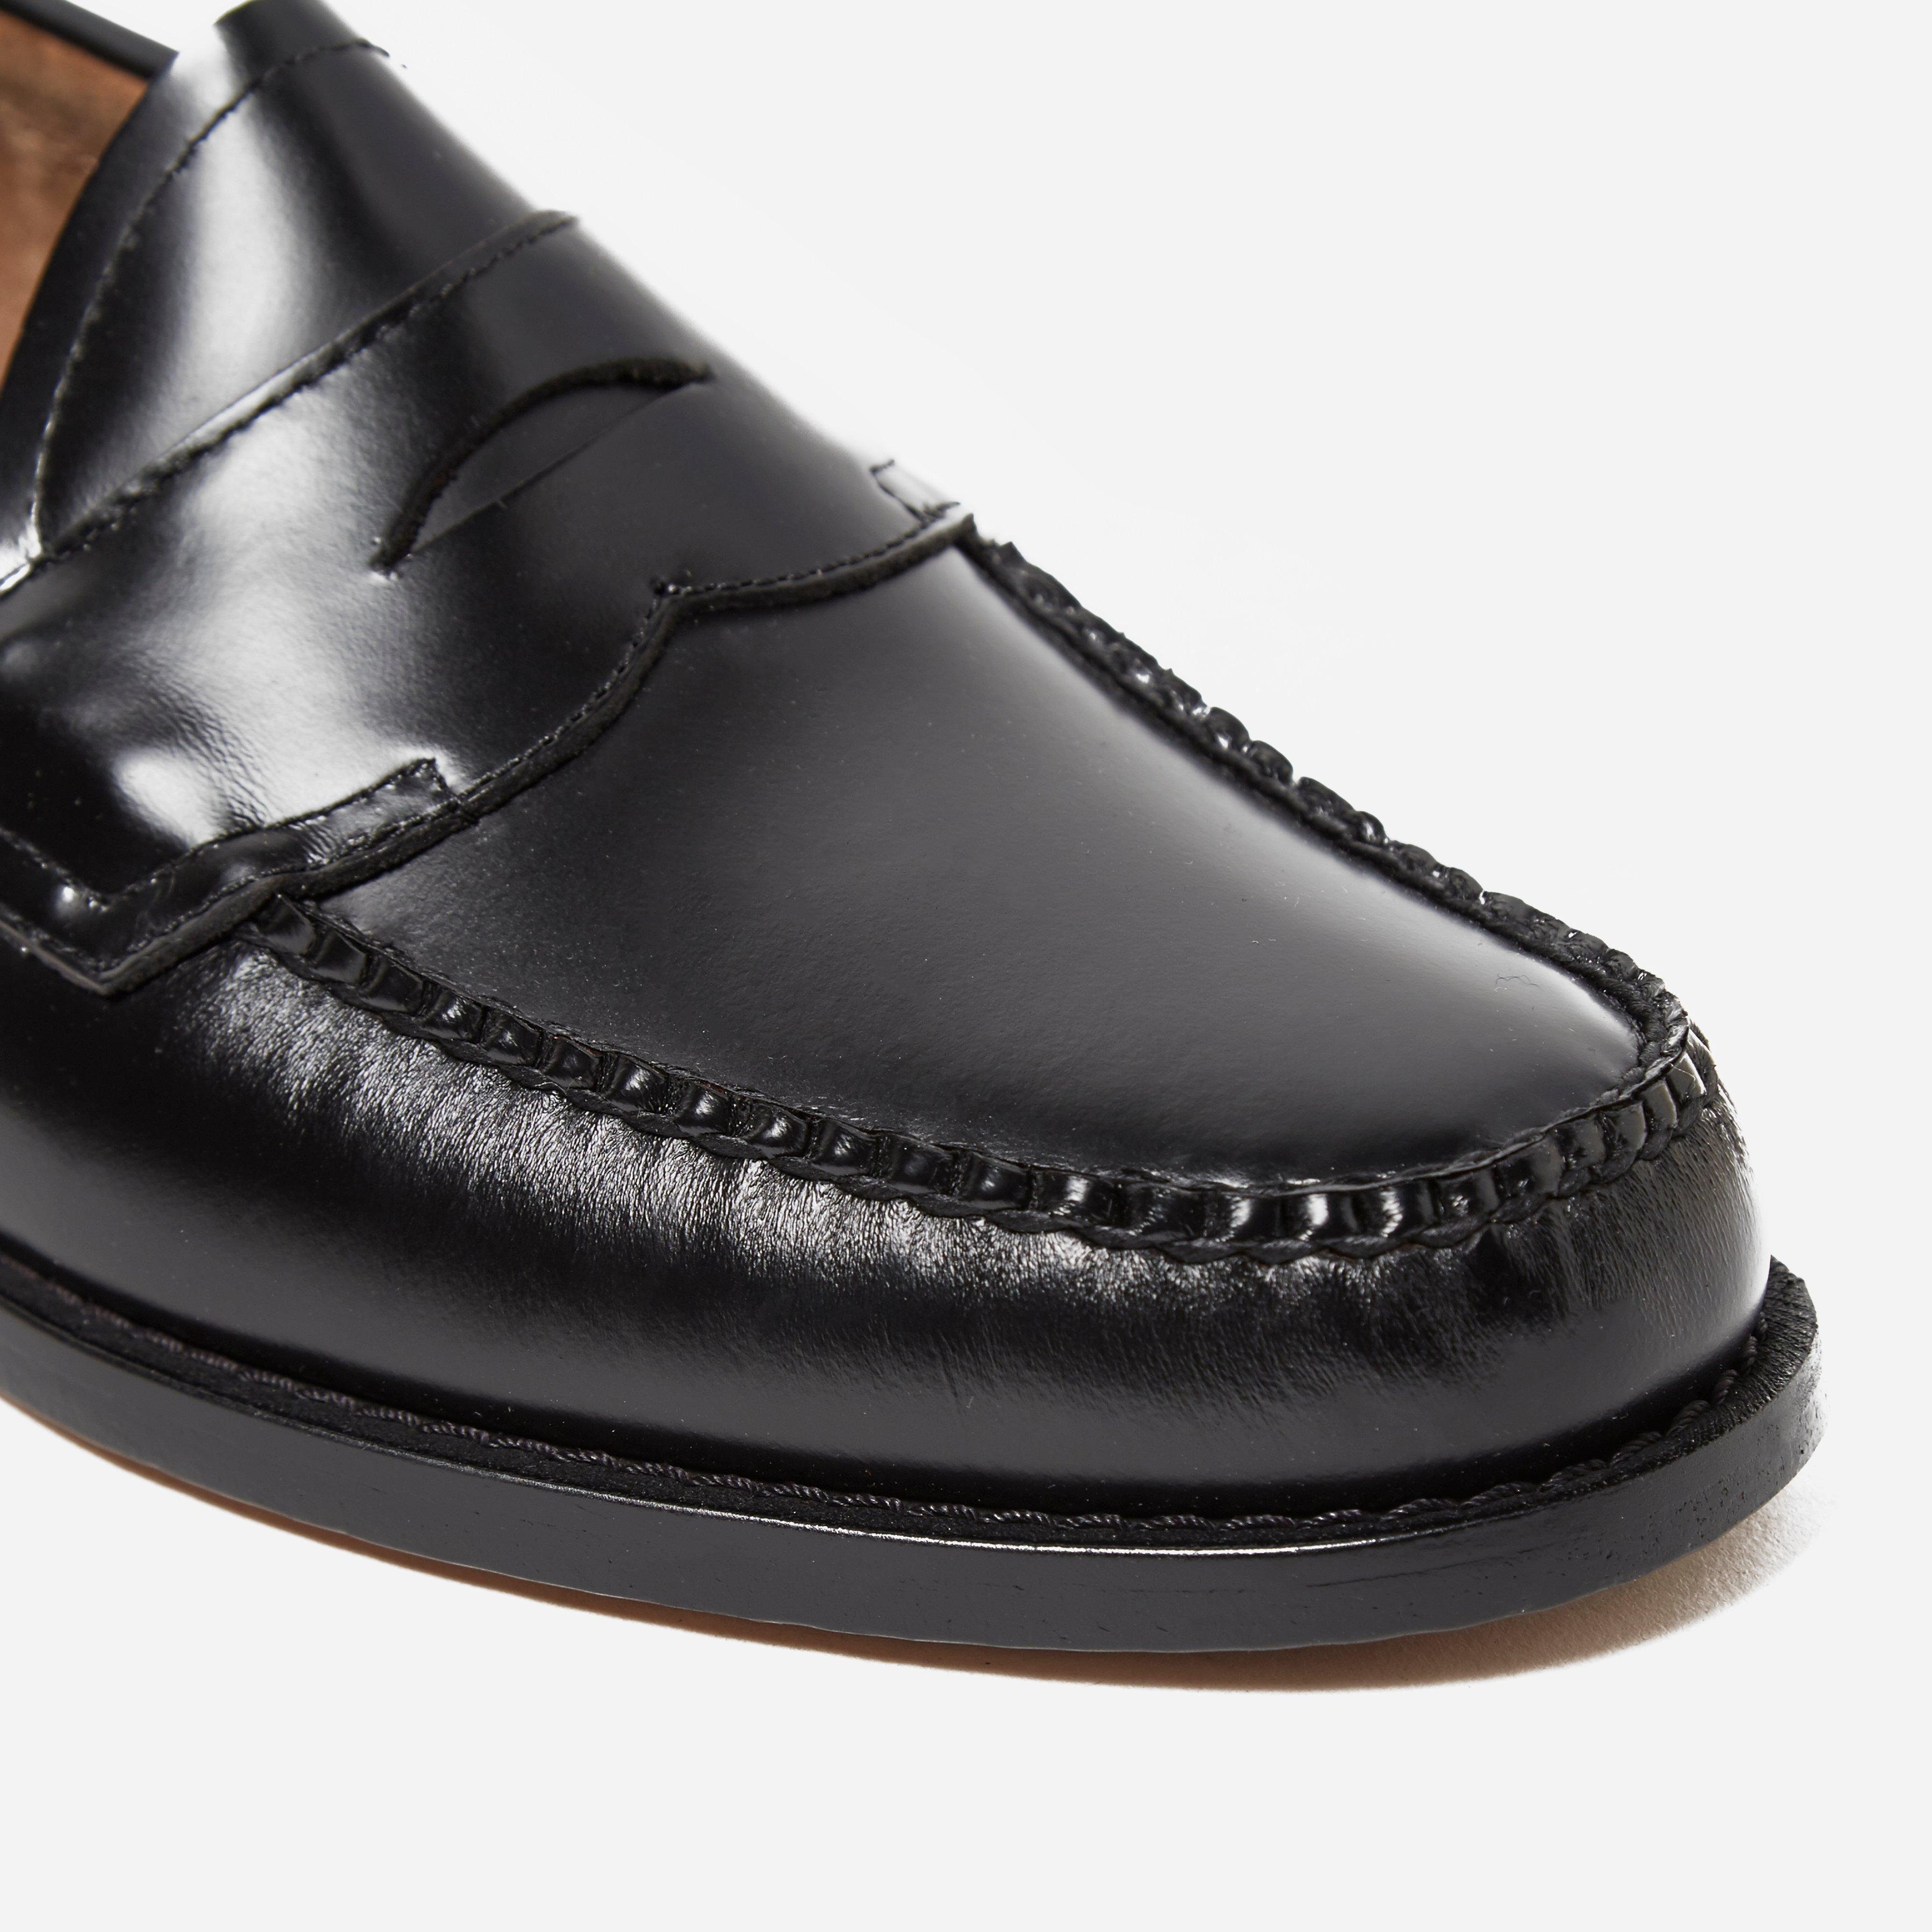 G.H.BASS Leather Bass Weejun Logan Penny Loafer in Black ...